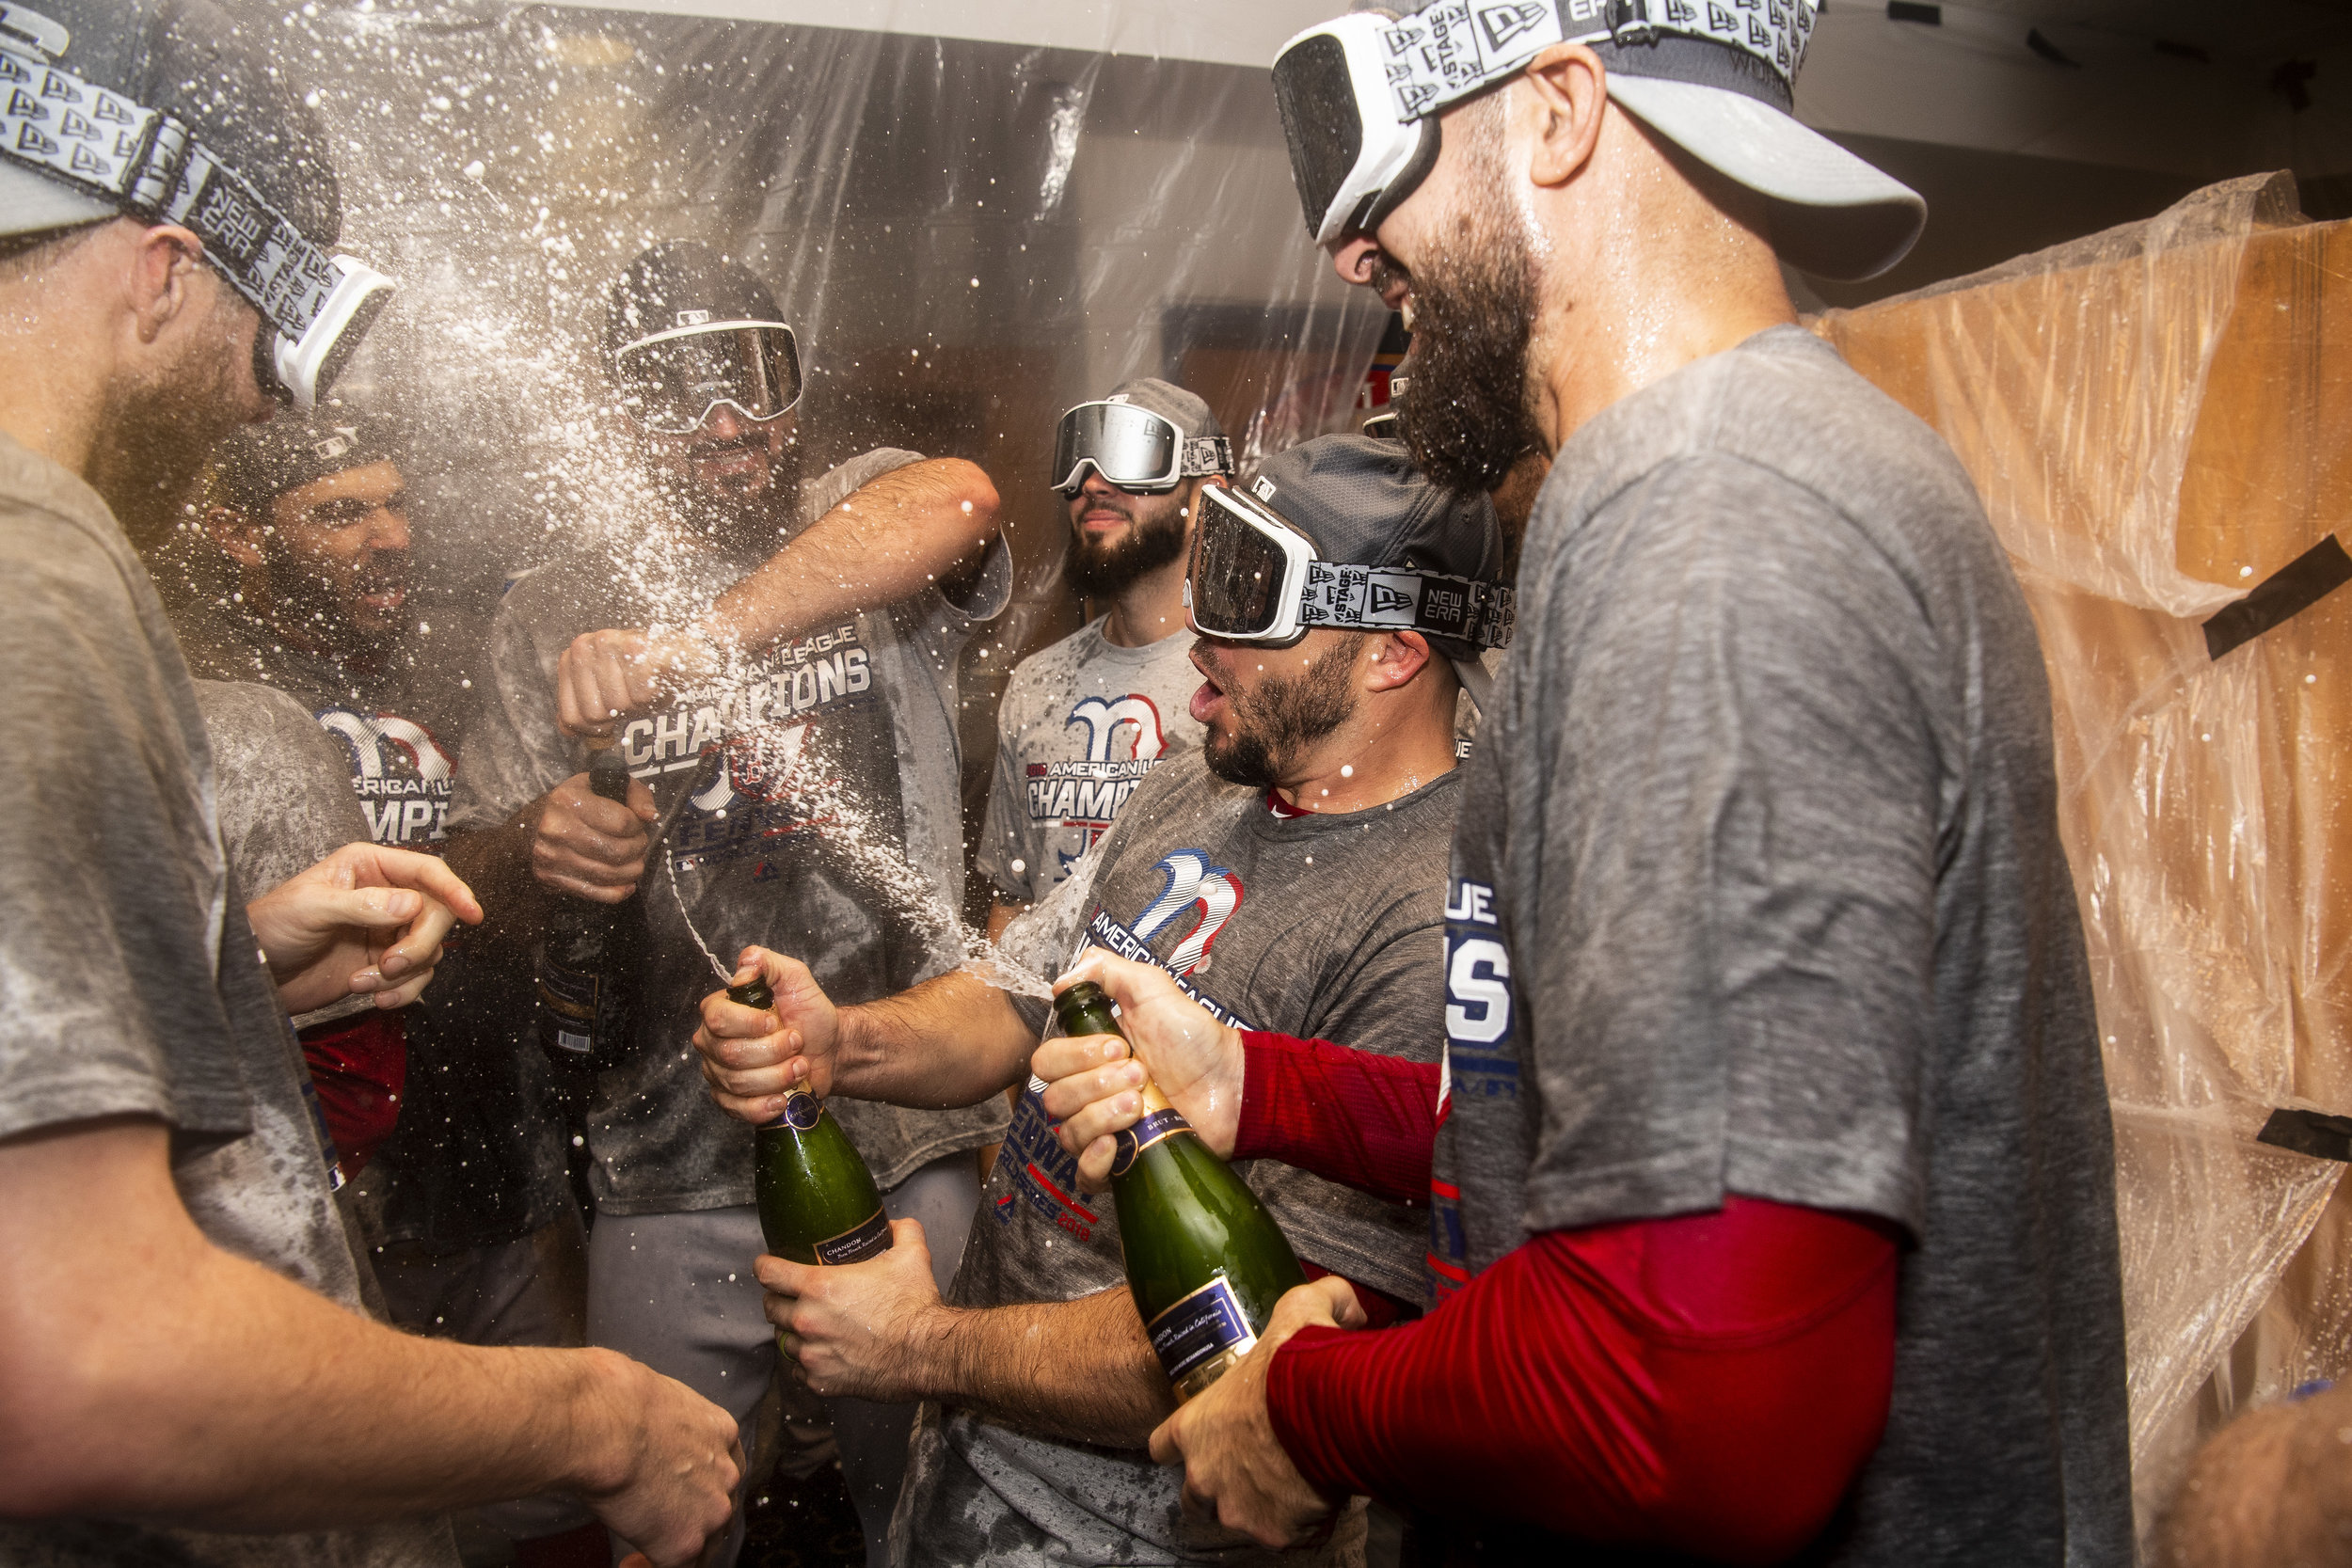 October 18, 2018, Houston, TX: The Boston Red Sox celebrate after defeating the Houston Astros in Game 5 of the ALCS to advance to the World Series at Minute Maid Park in Houston, Texas on Thursday, October 18, 2018. (Photo by Matthew Thomas/Boston Red Sox)